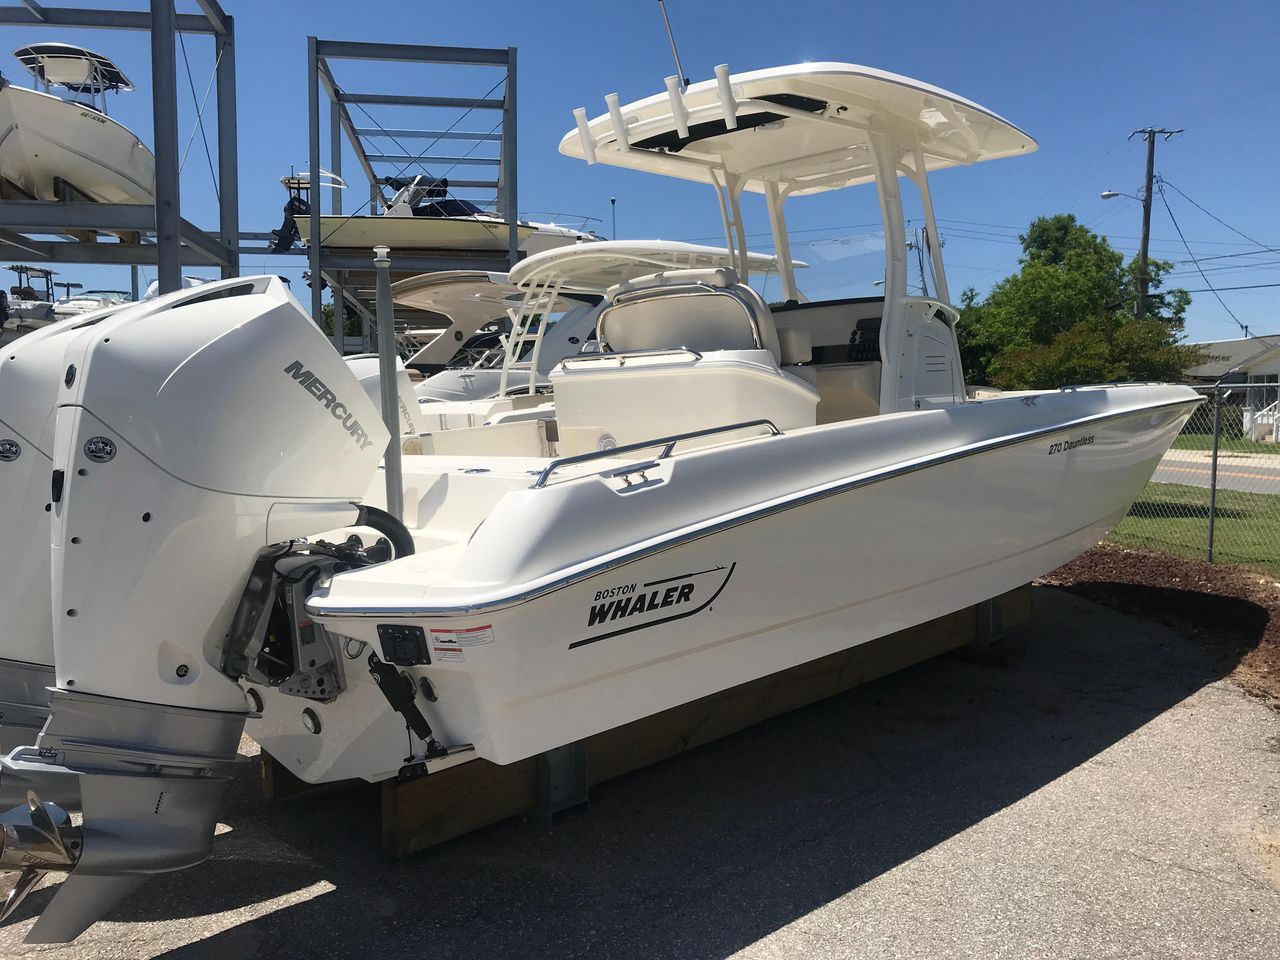 2019 New Boston Whaler 270 Dauntless High Performance Boat